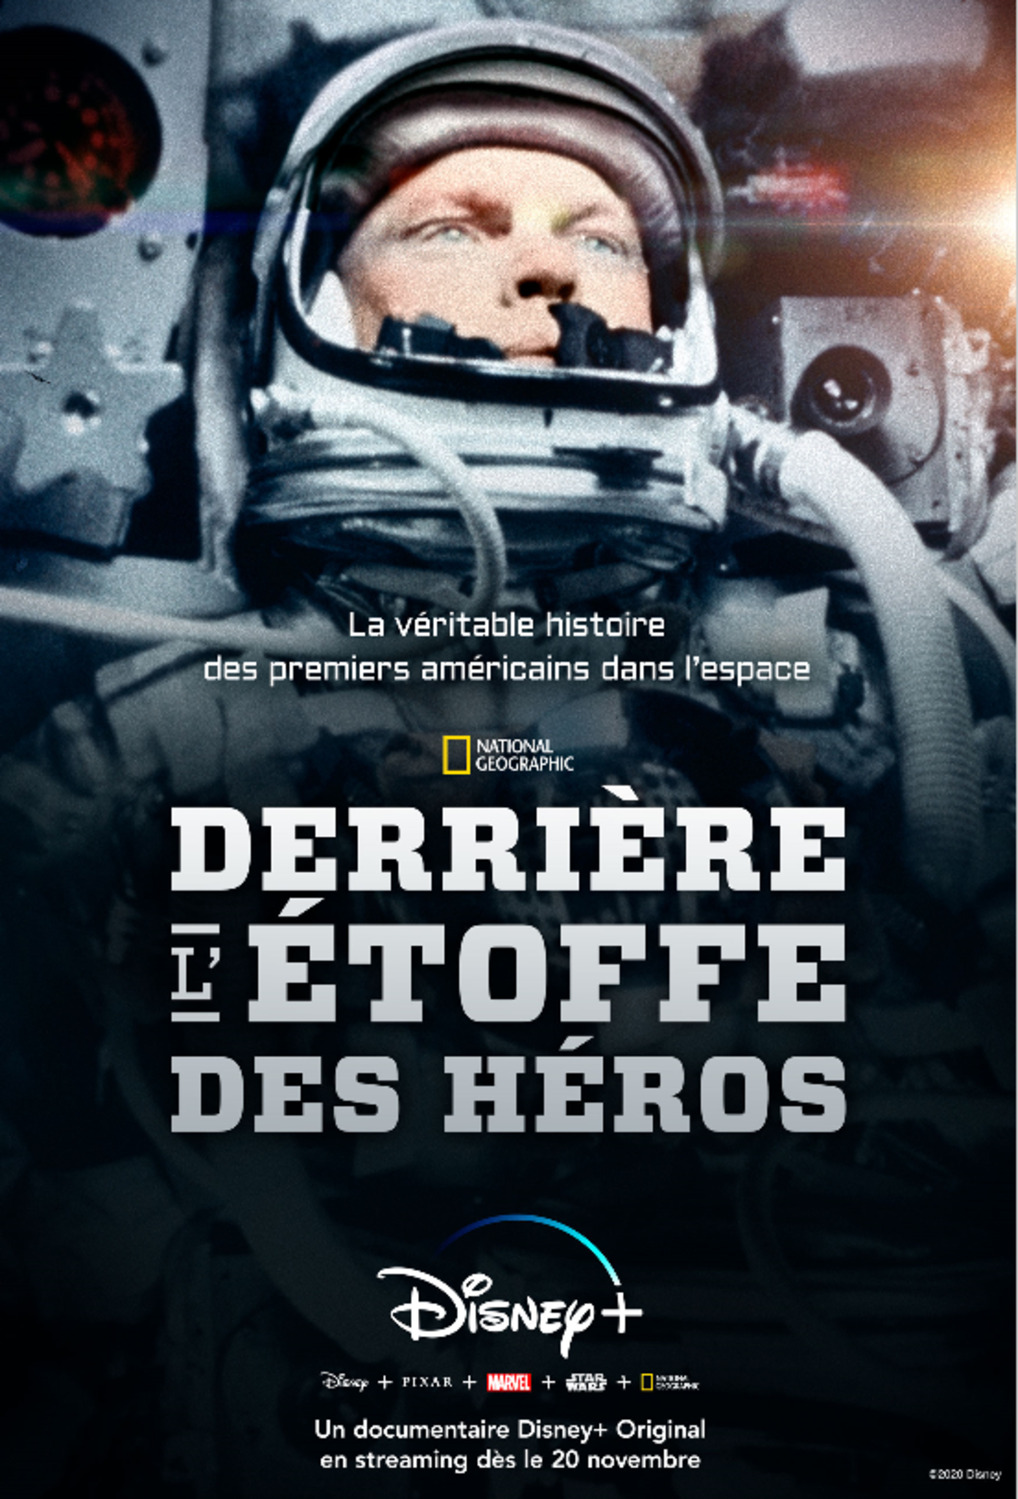 affiche poster derriere etoffe heros real right stuff disney